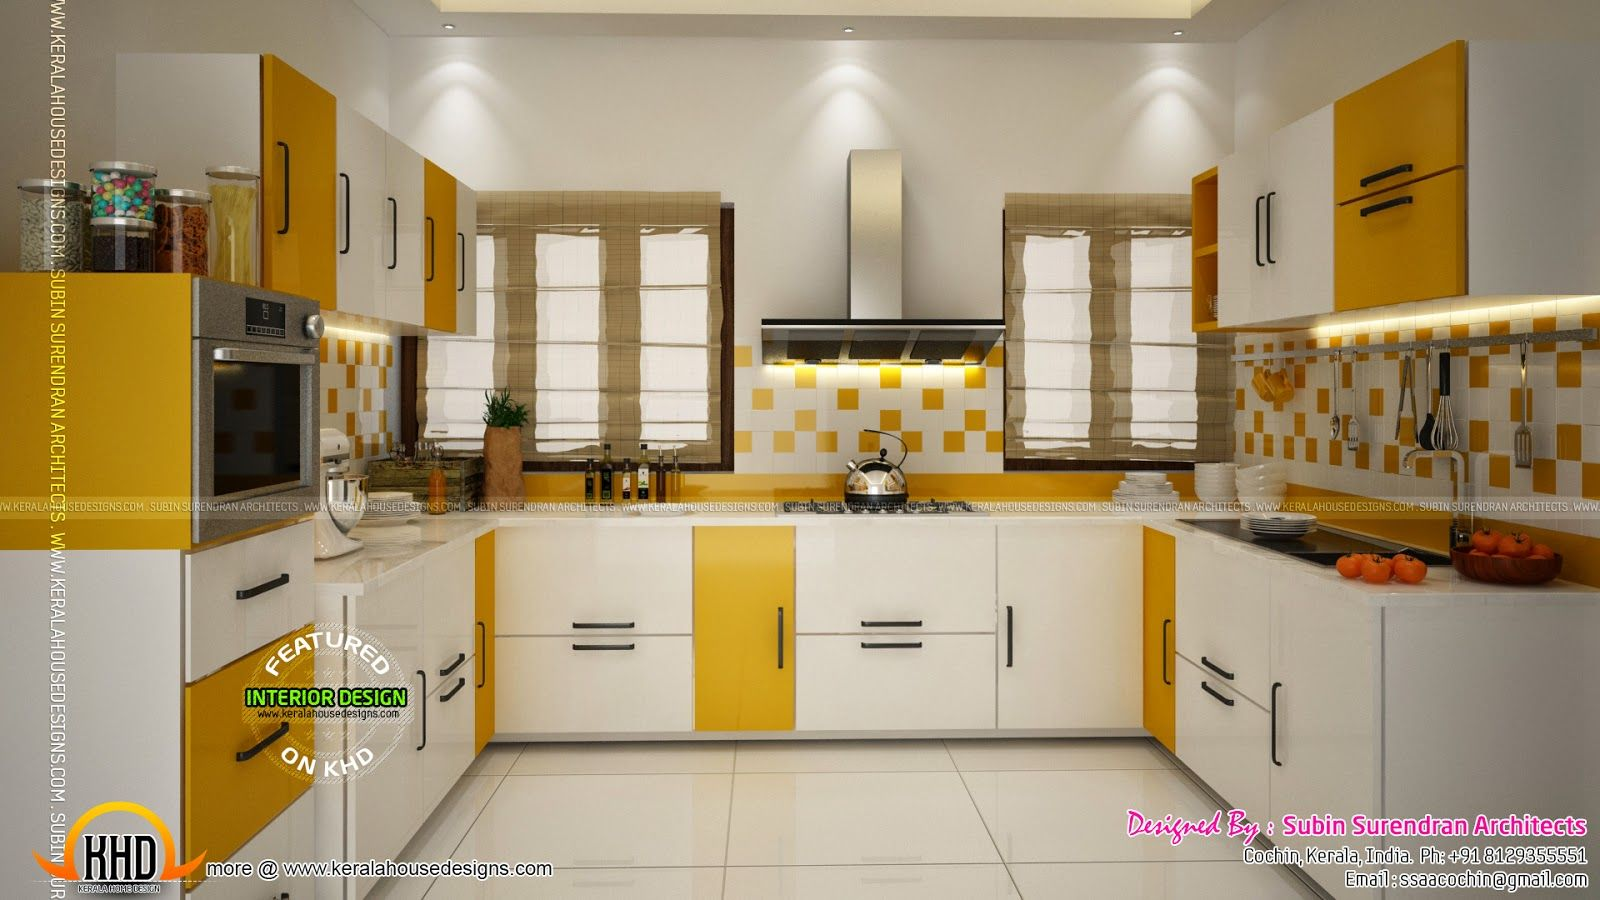 kitchen design kerala houses kerala home design floor plans interior design cochin 495